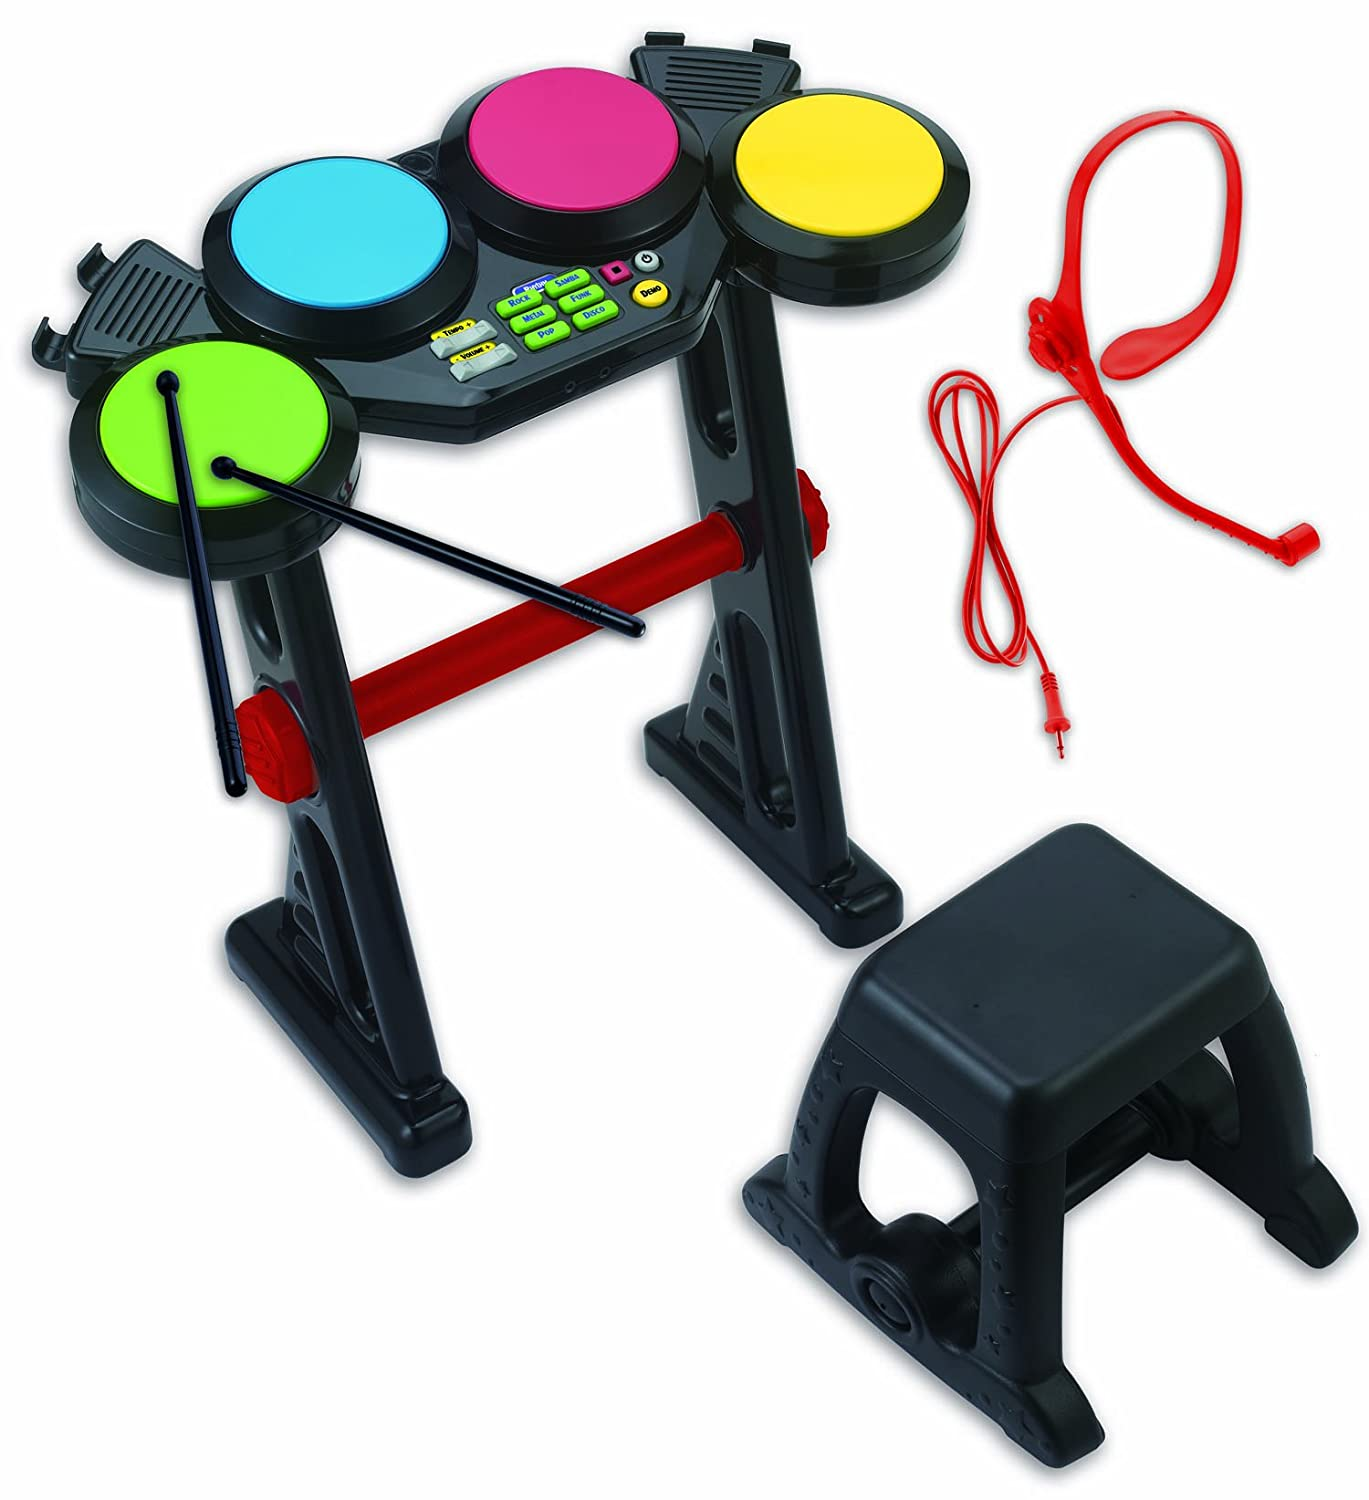 Winfun Kids Fun Electronic Drum Set Winfun USA - Toys 2076-NL